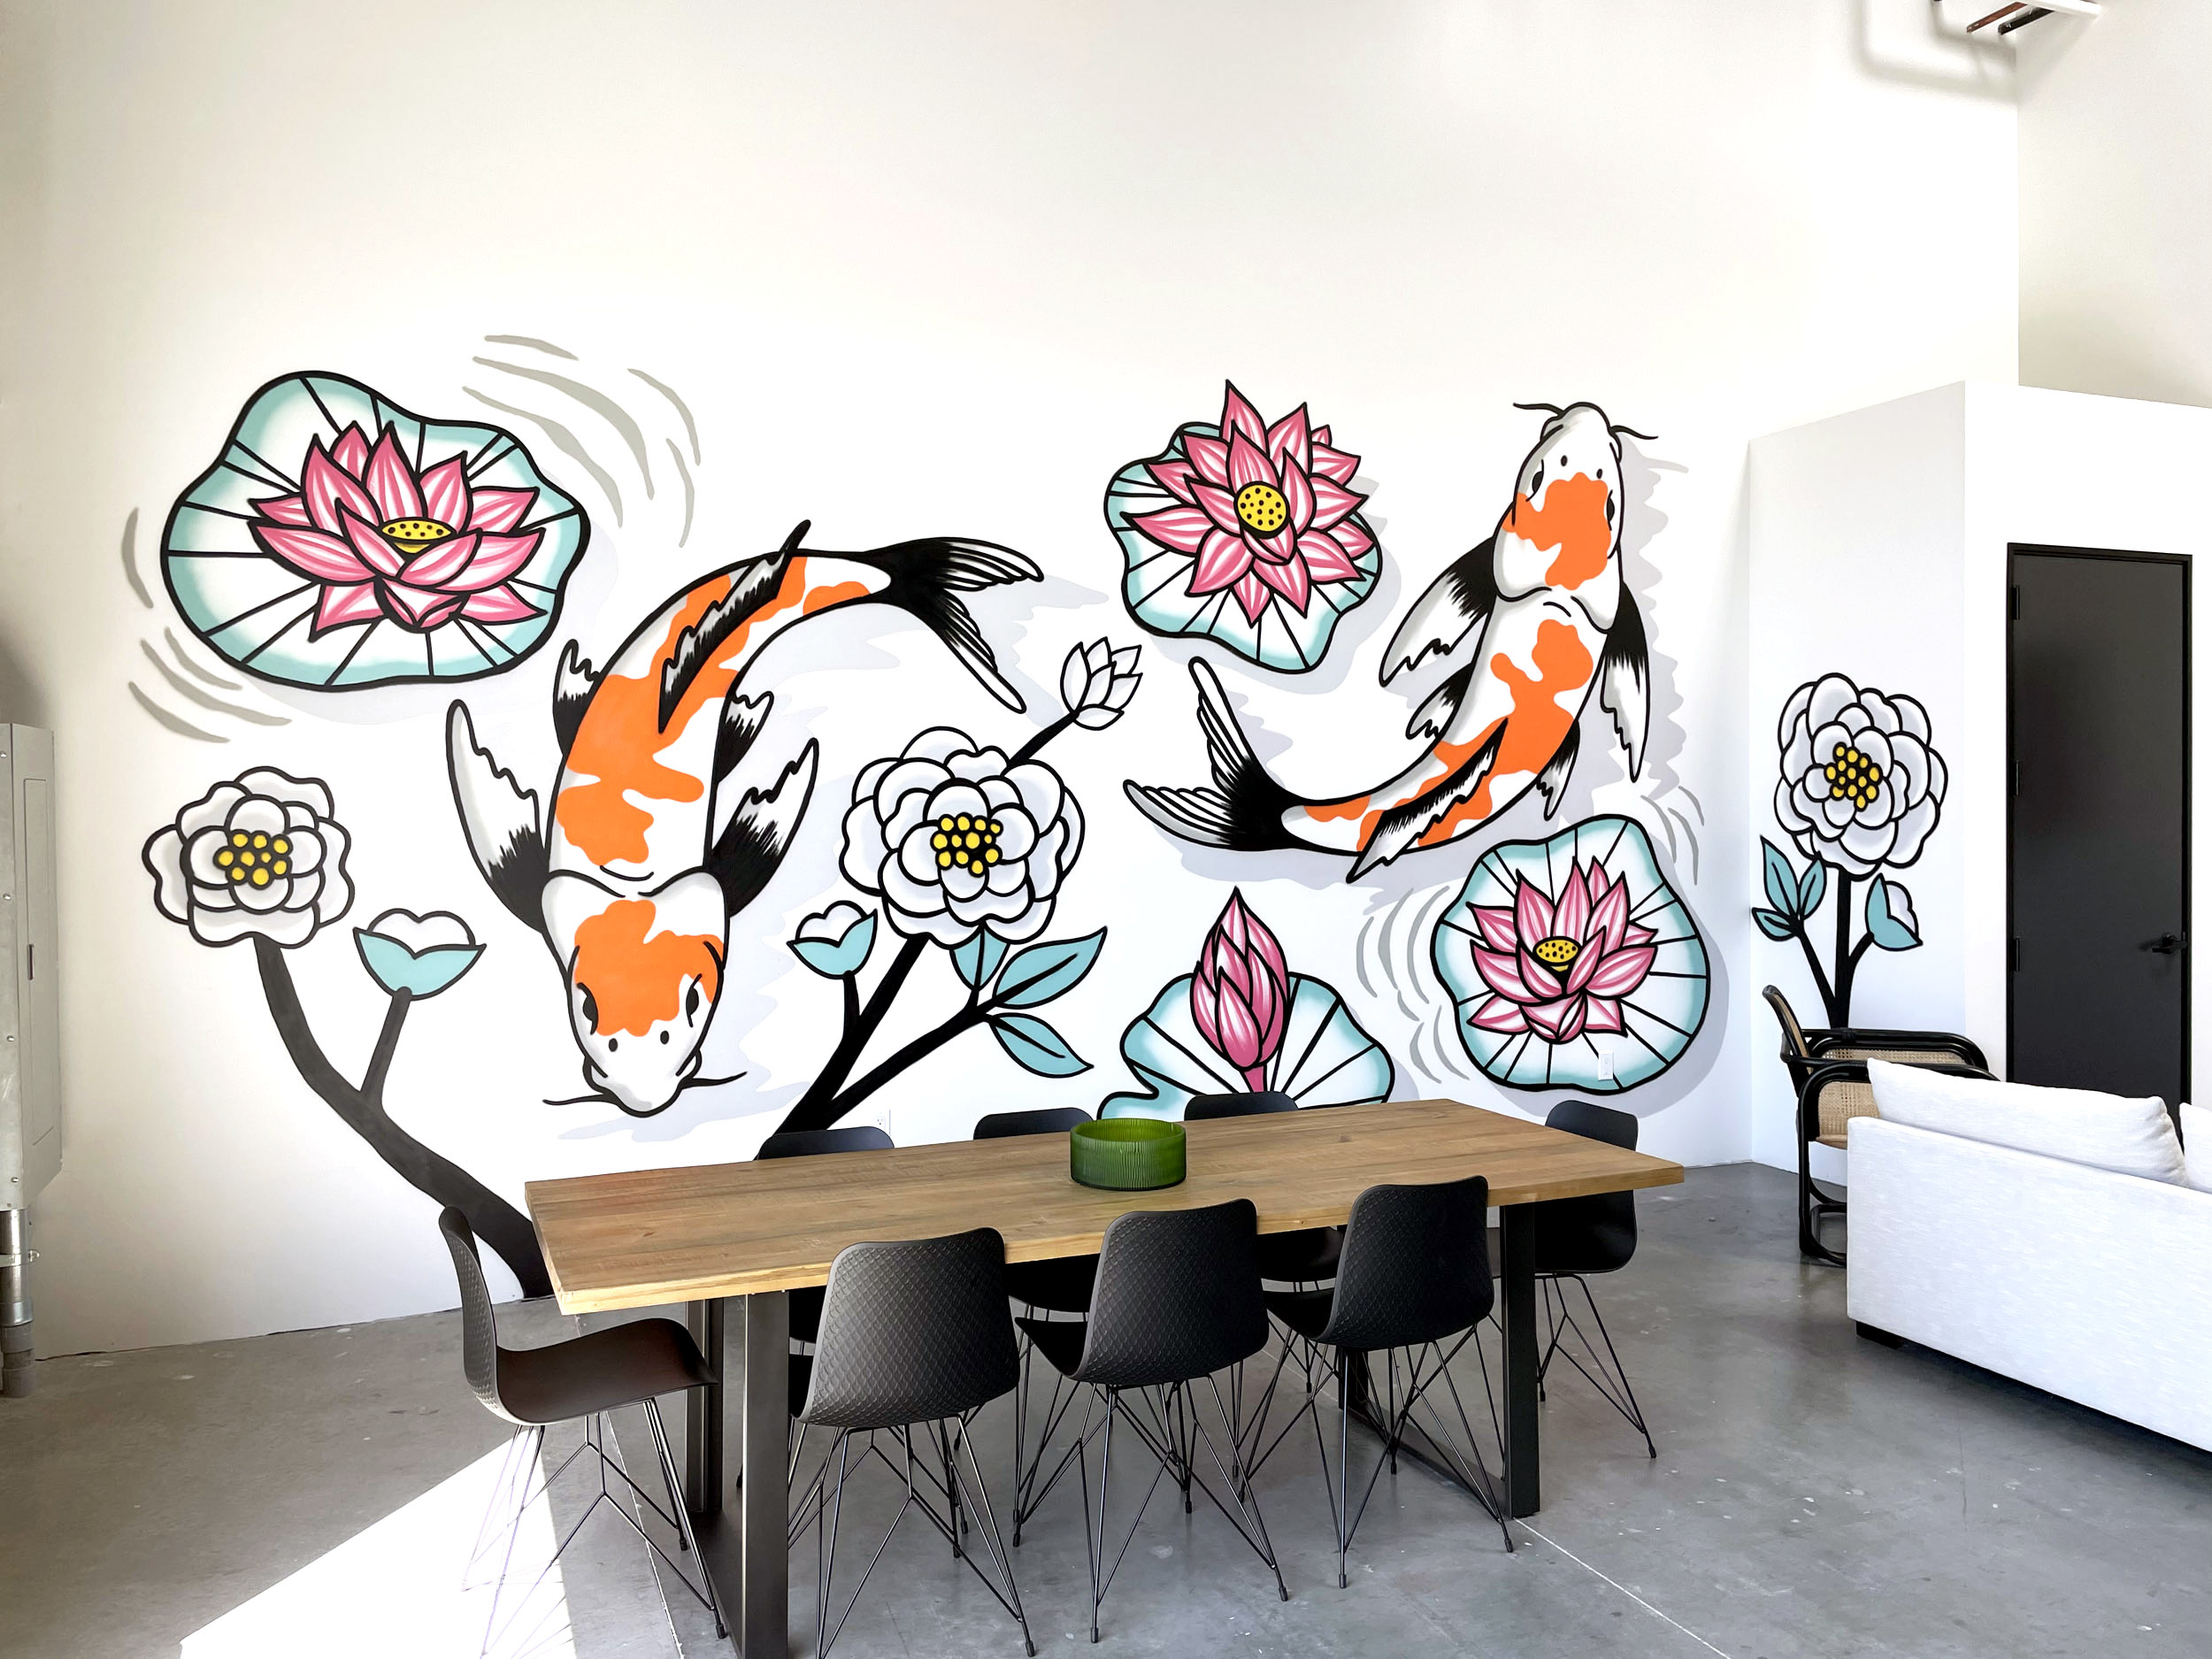 Koi Fish Mural for Office Space